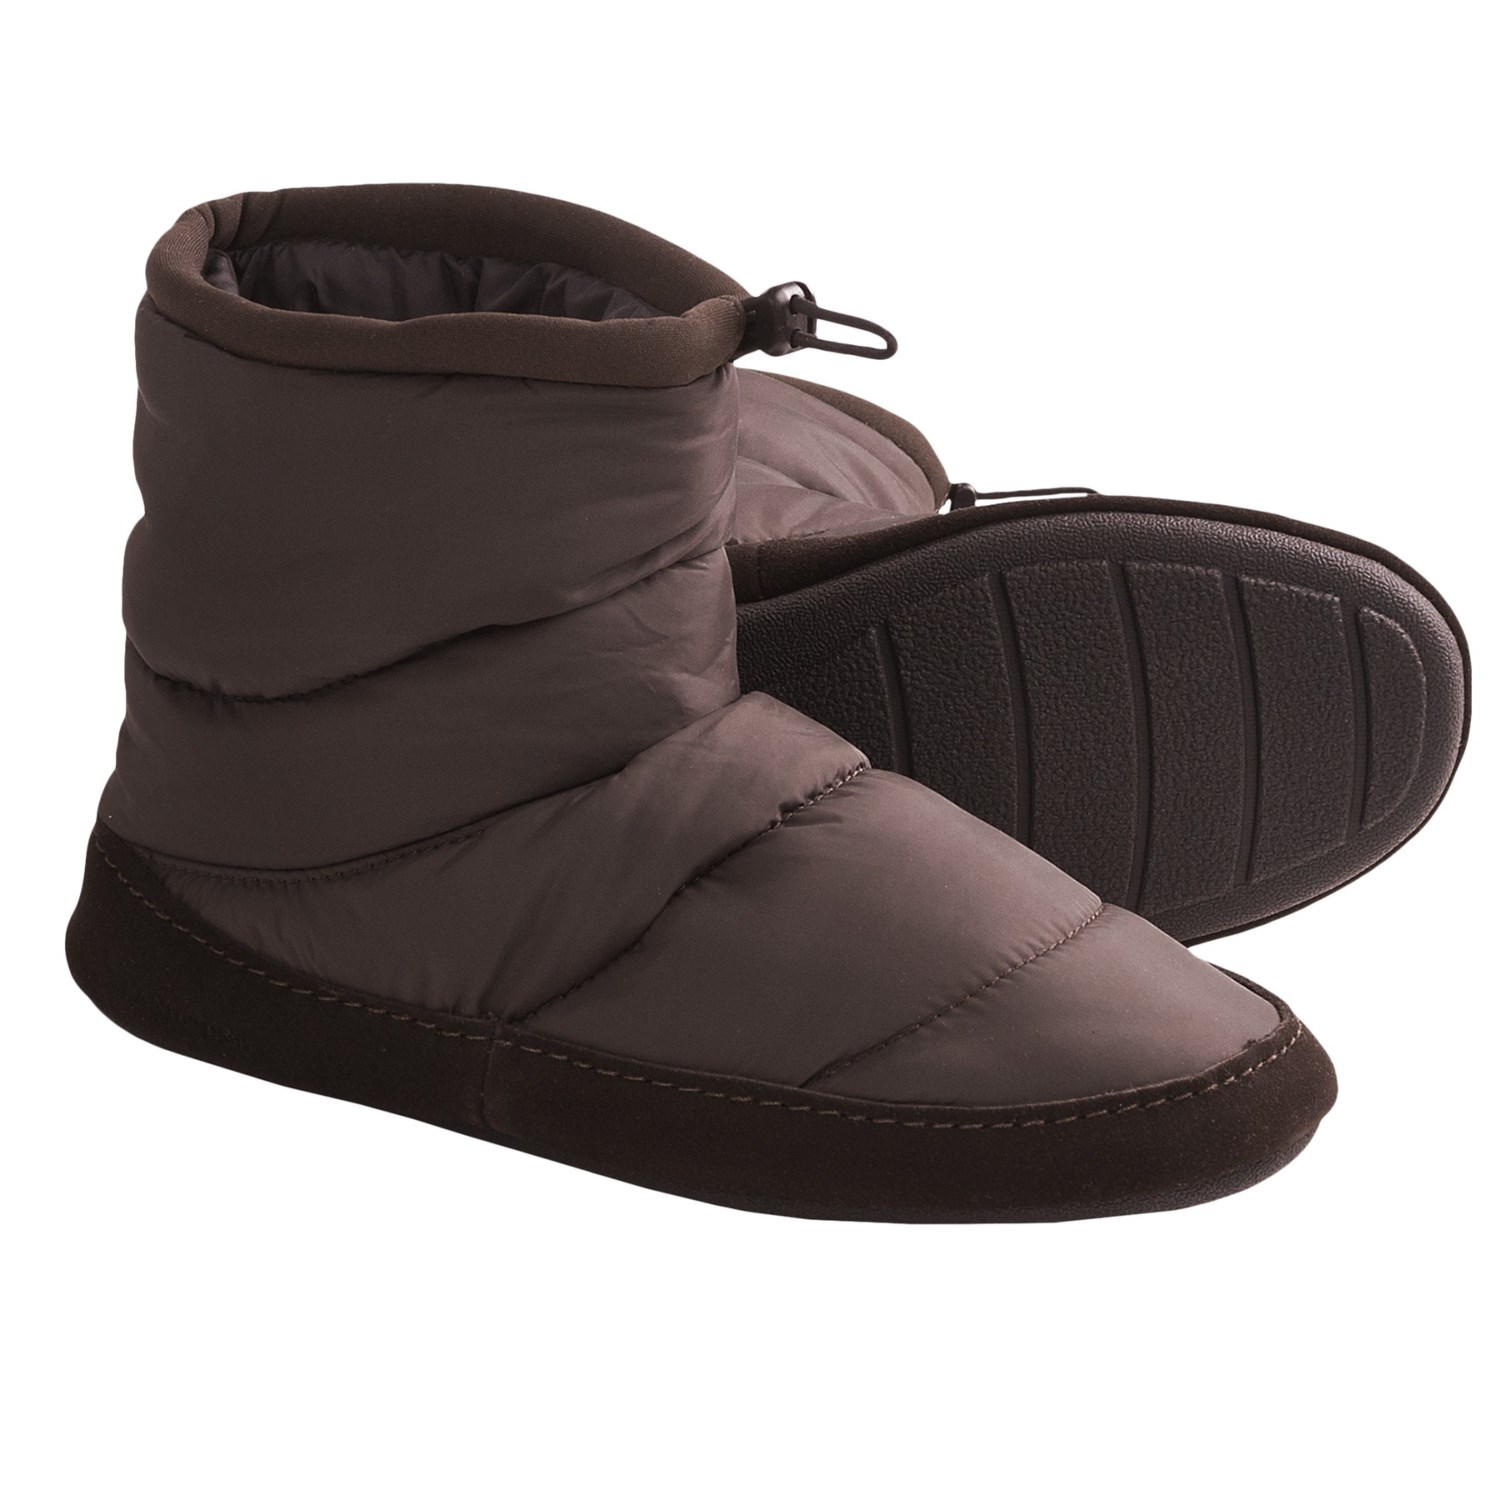 Mens Bootie Slippers 28 Images Mens Balmoral Bootie